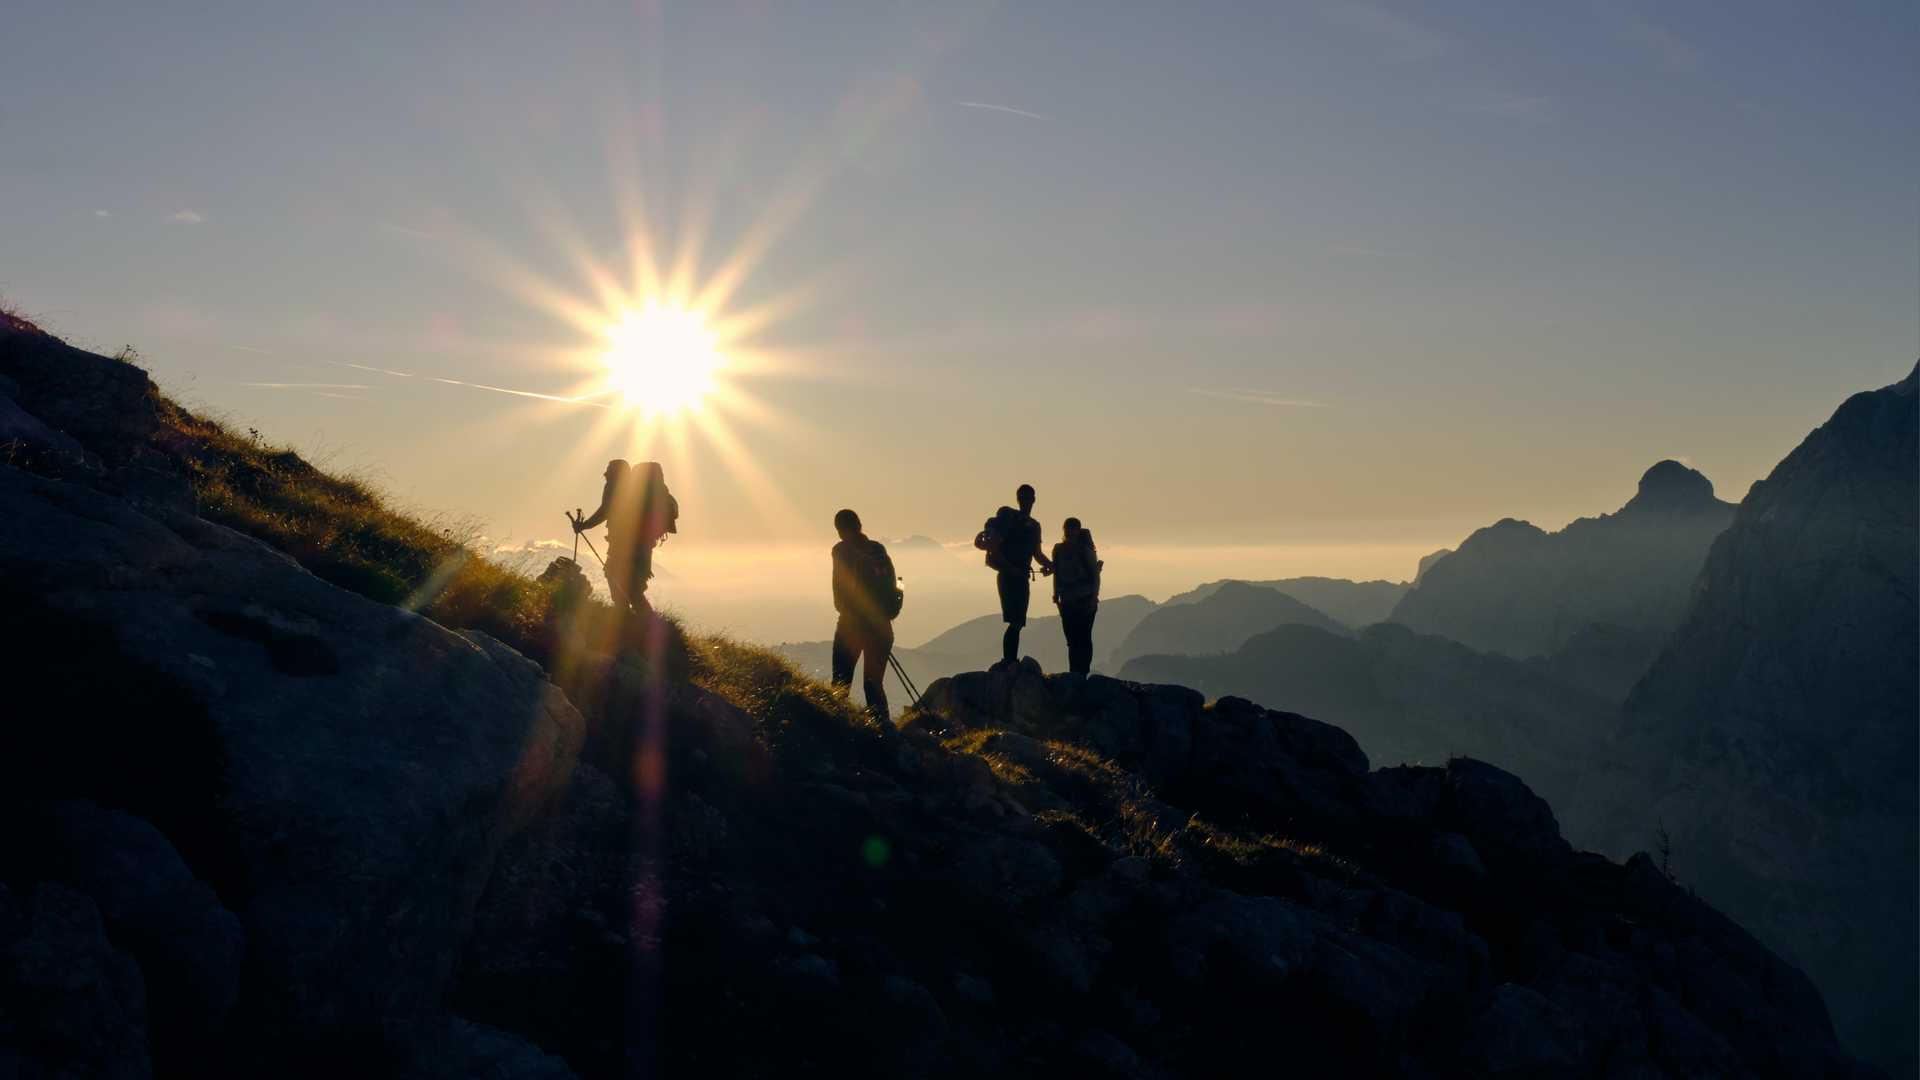 Hikers in the Triglav National Park